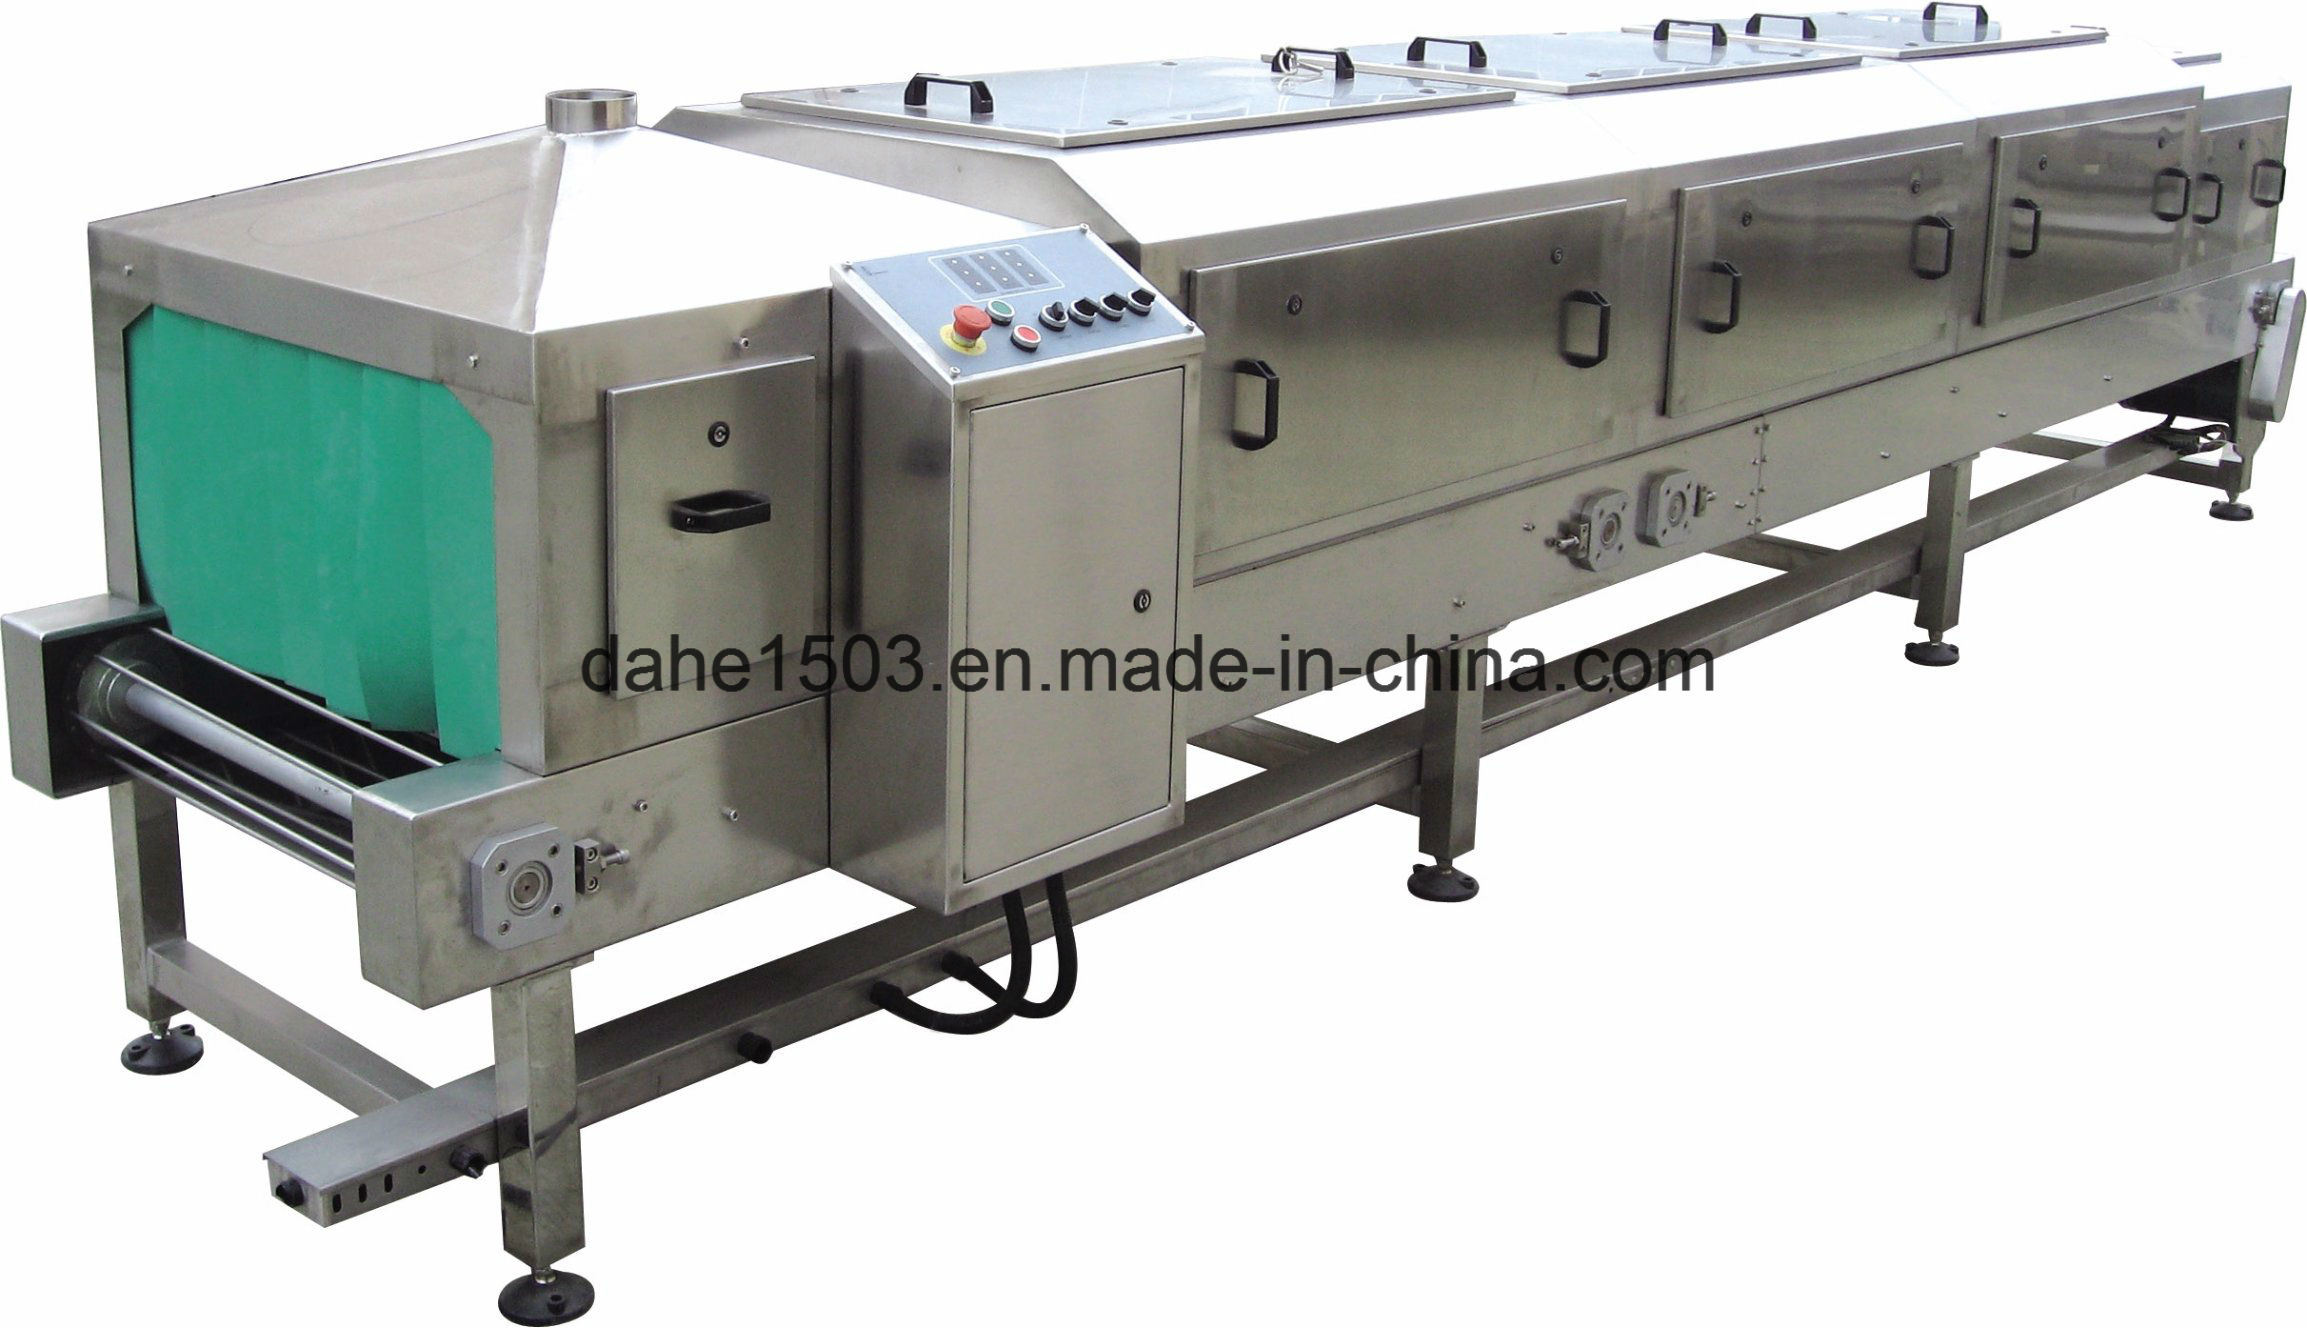 Automatic Bulk Big Bag Sterlizing Machine